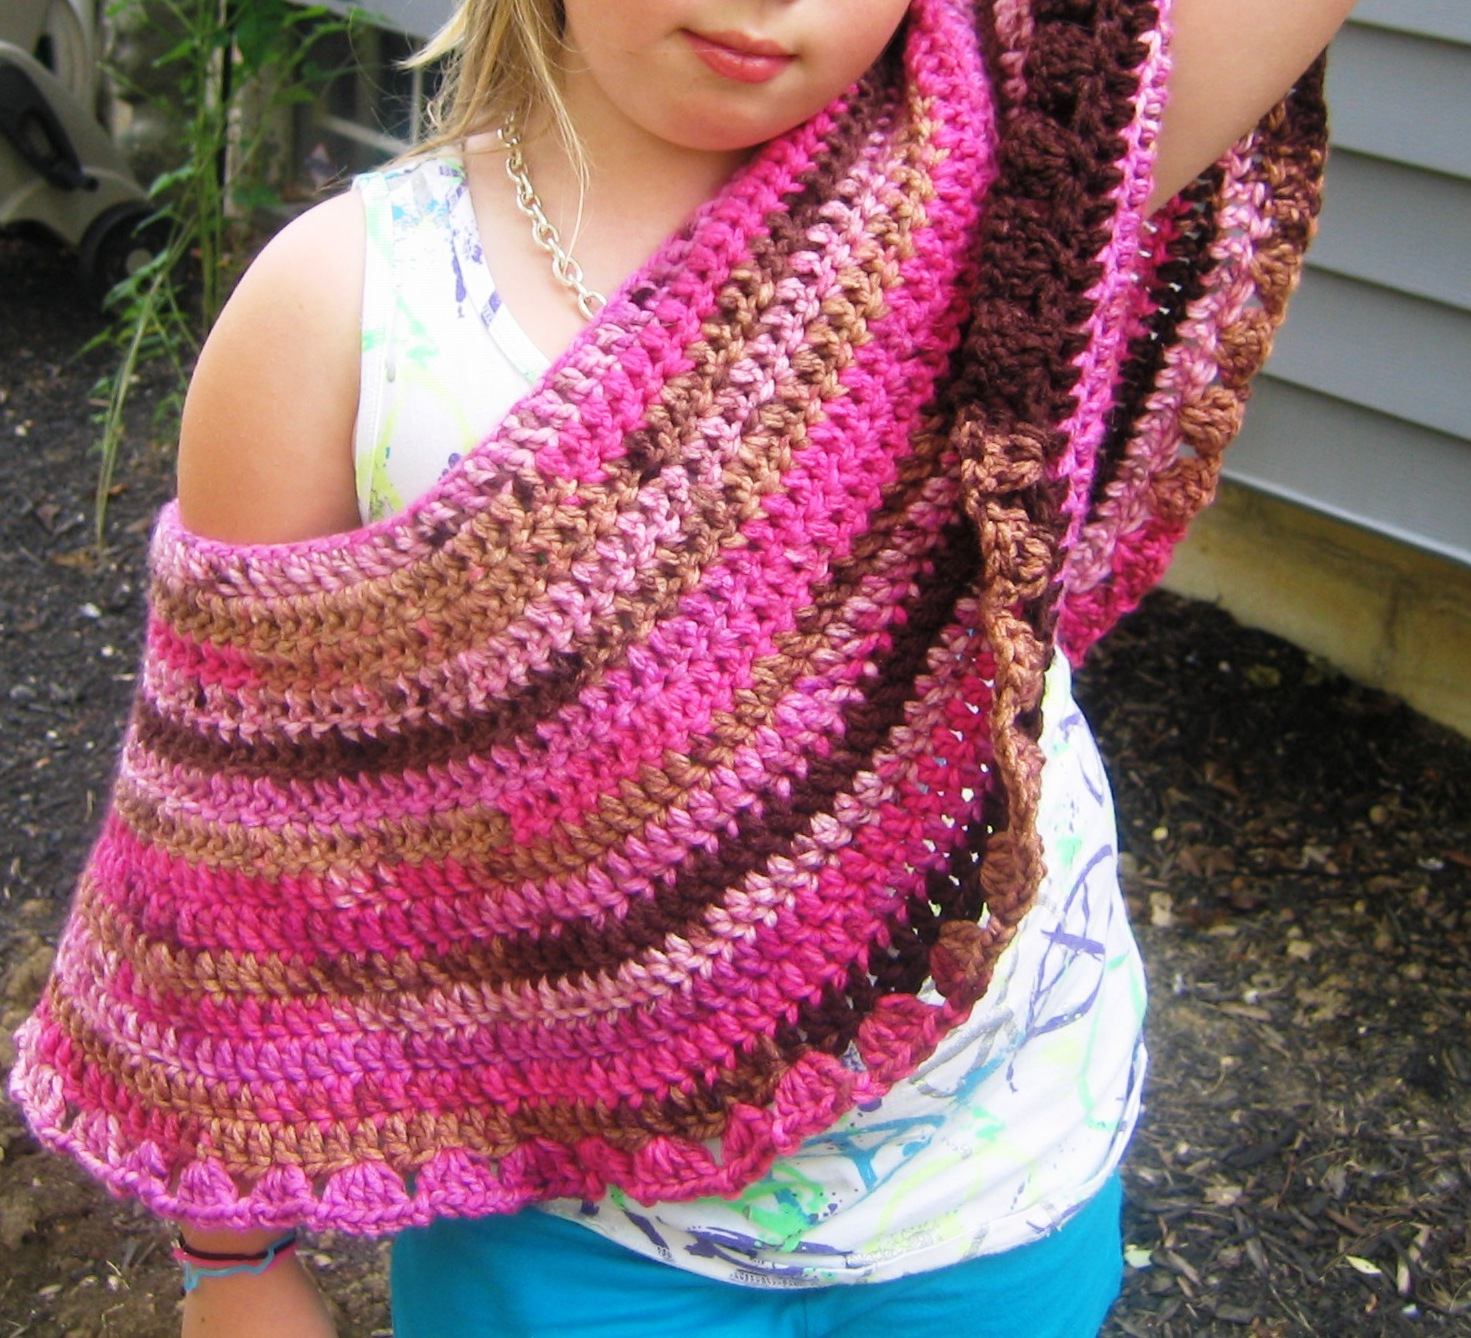 How to make Great Crochet Poncho?